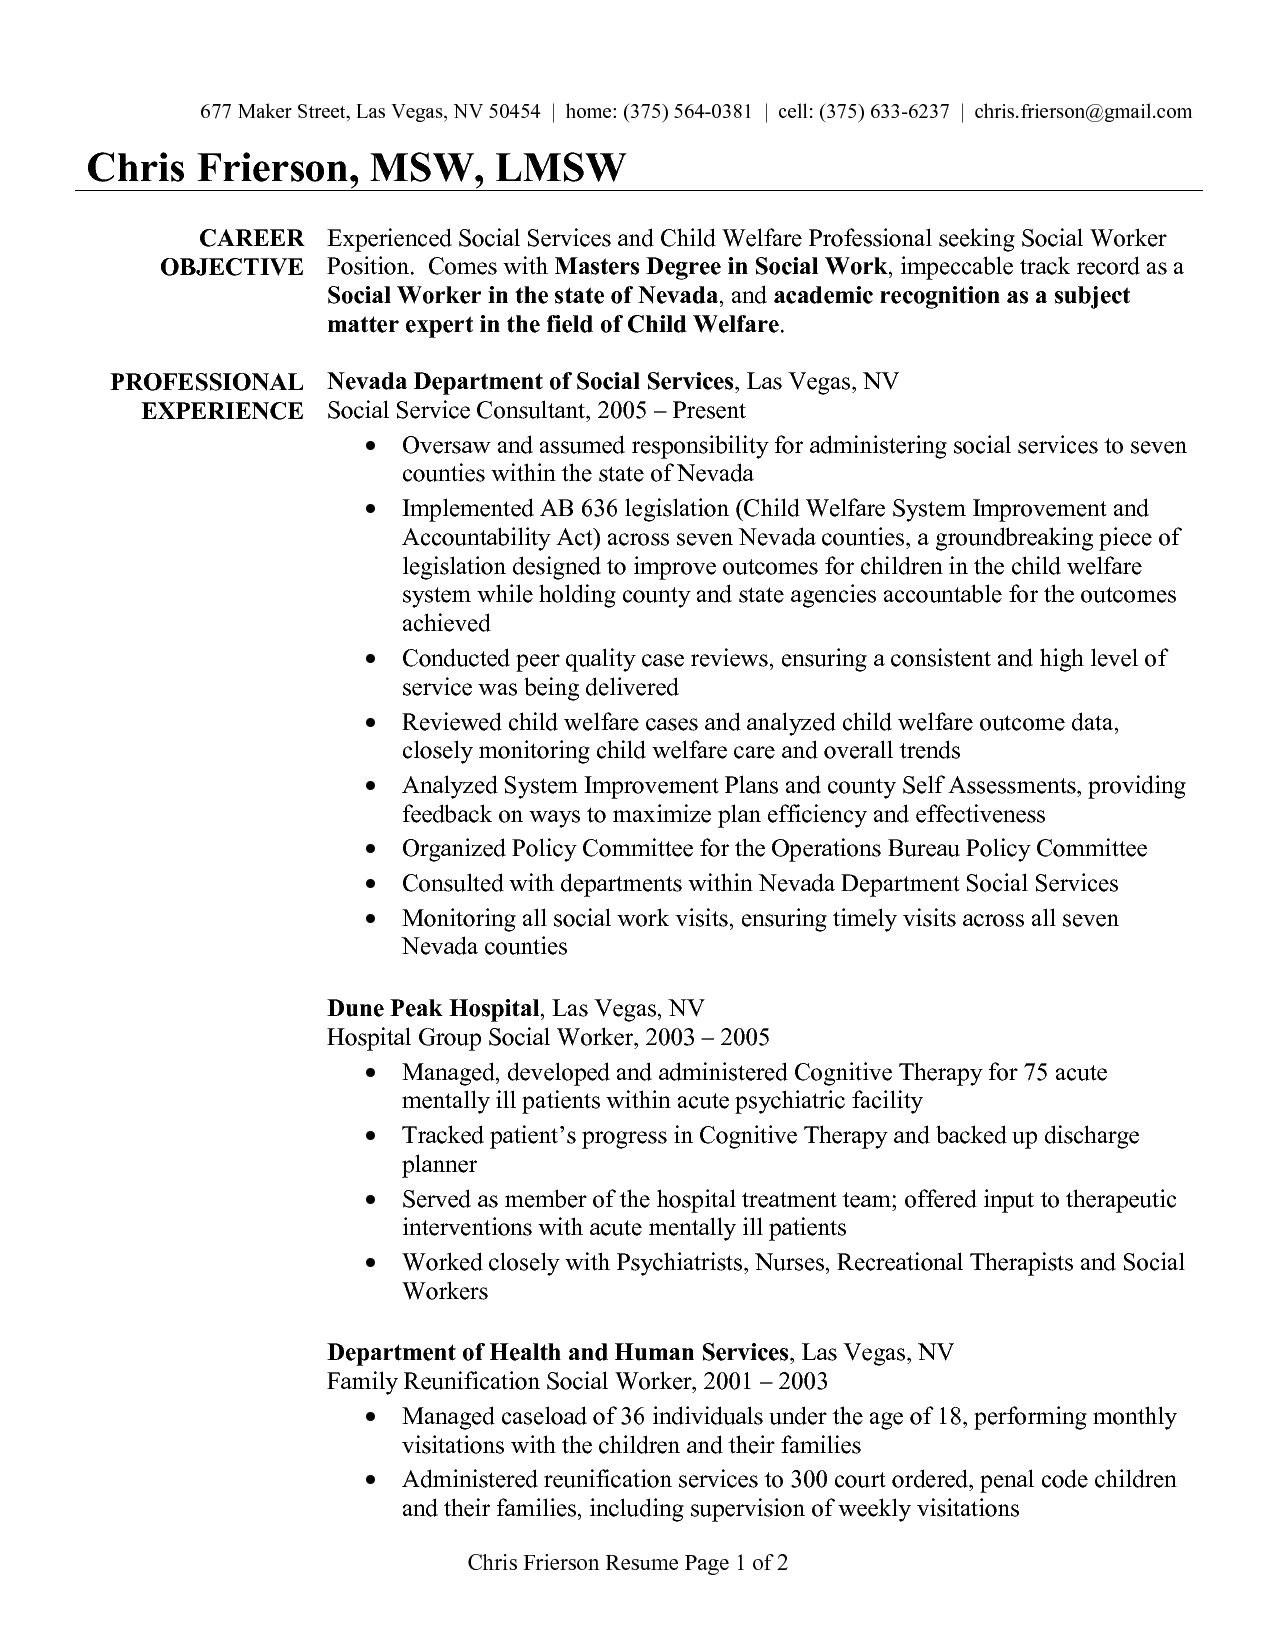 Laborer Resume Social Work Resume Examples  Social Worker Resume Sample